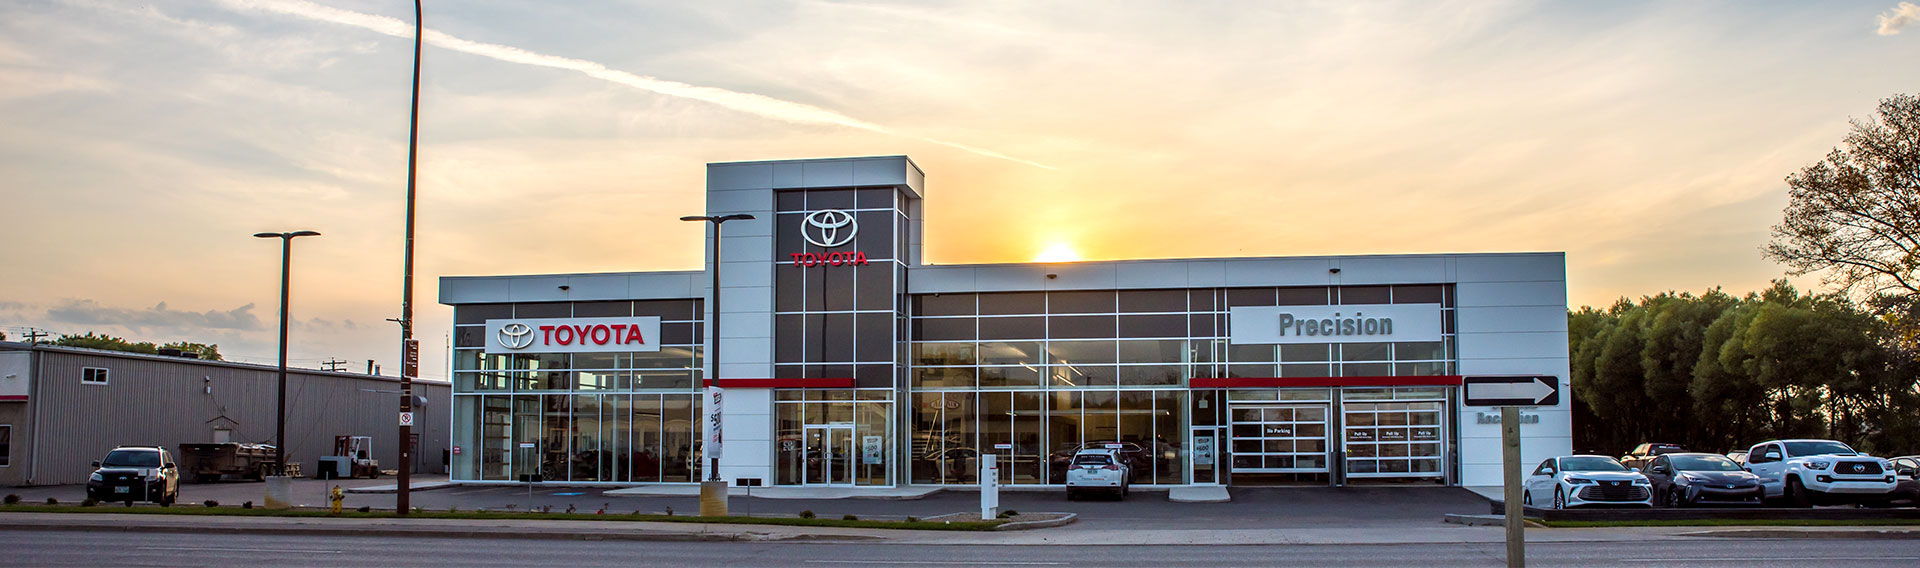 PrecisionToyota by Crane Steel Structures